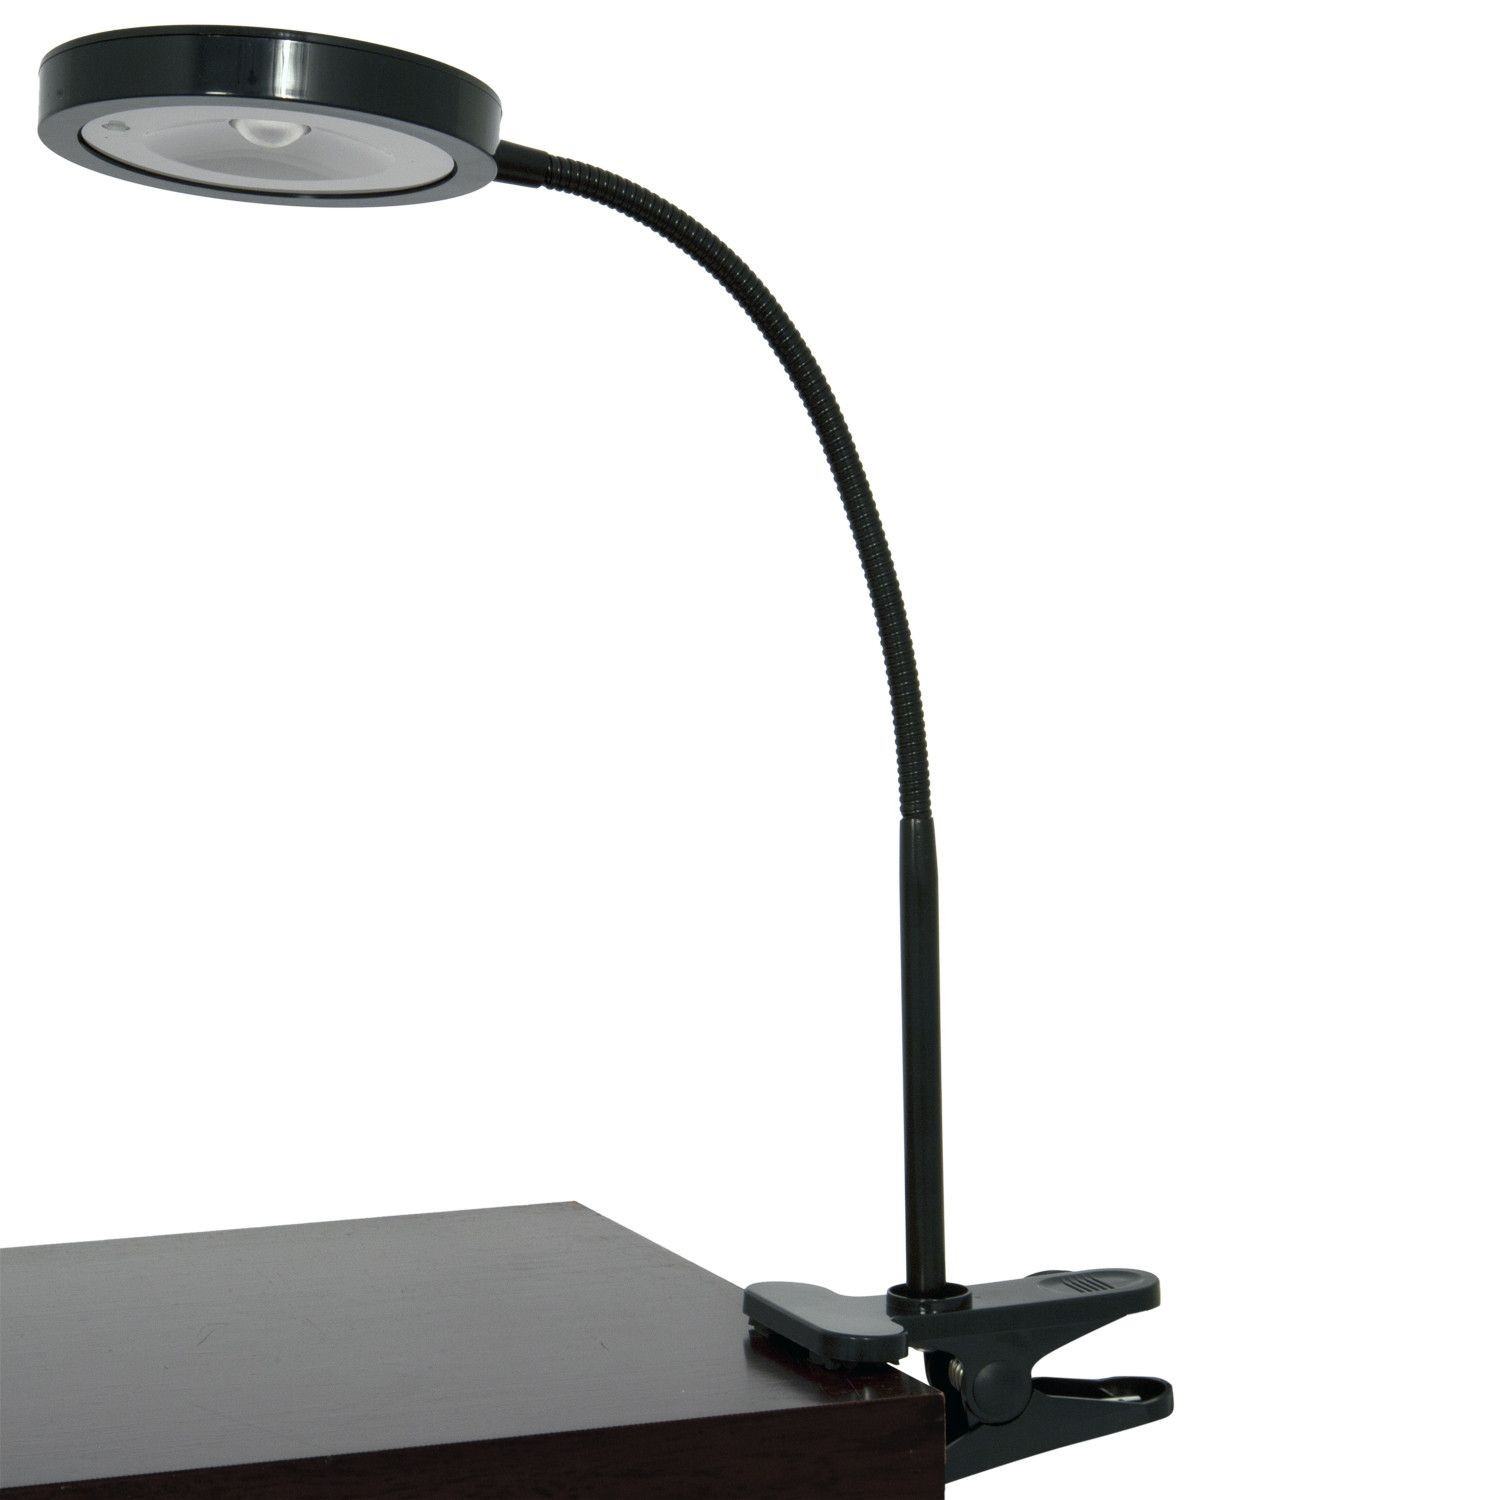 Best ideas about Amazon Led Desk Lamp . Save or Pin Tall Led Desk Lamp Desk Lamp Amazon Fluorescent Light Desk Now.